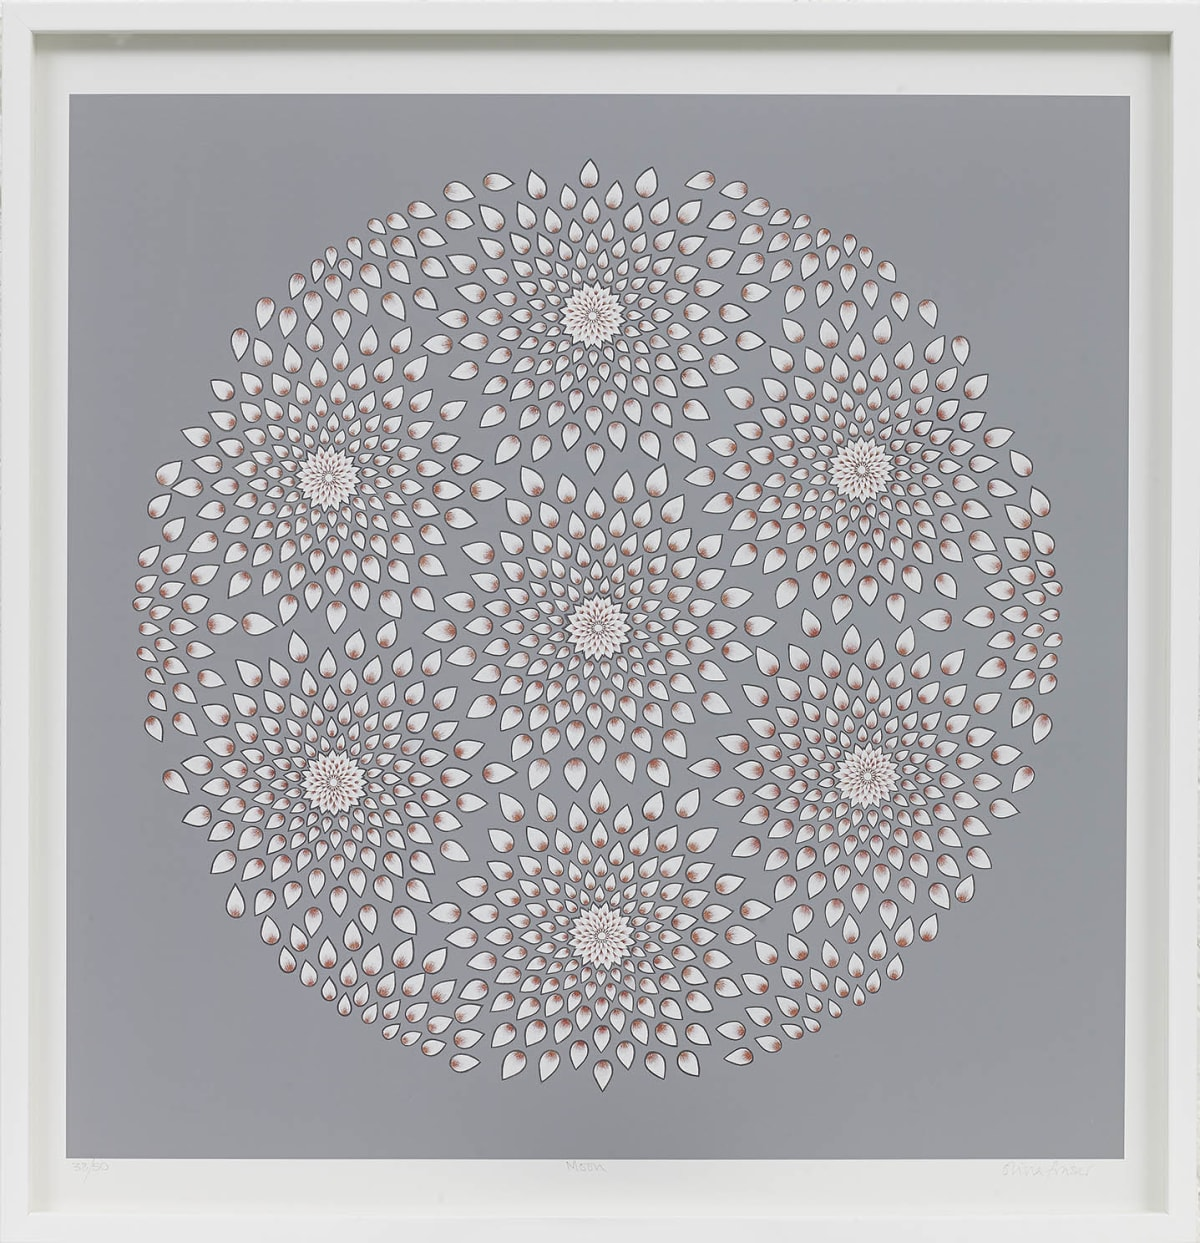 Olivia Fraser b. 1965Moon, 2013 Giclee print on Photo Rag paper 54 x 54 cm 21 1/4 x 21 1/4 in From an edition of 50